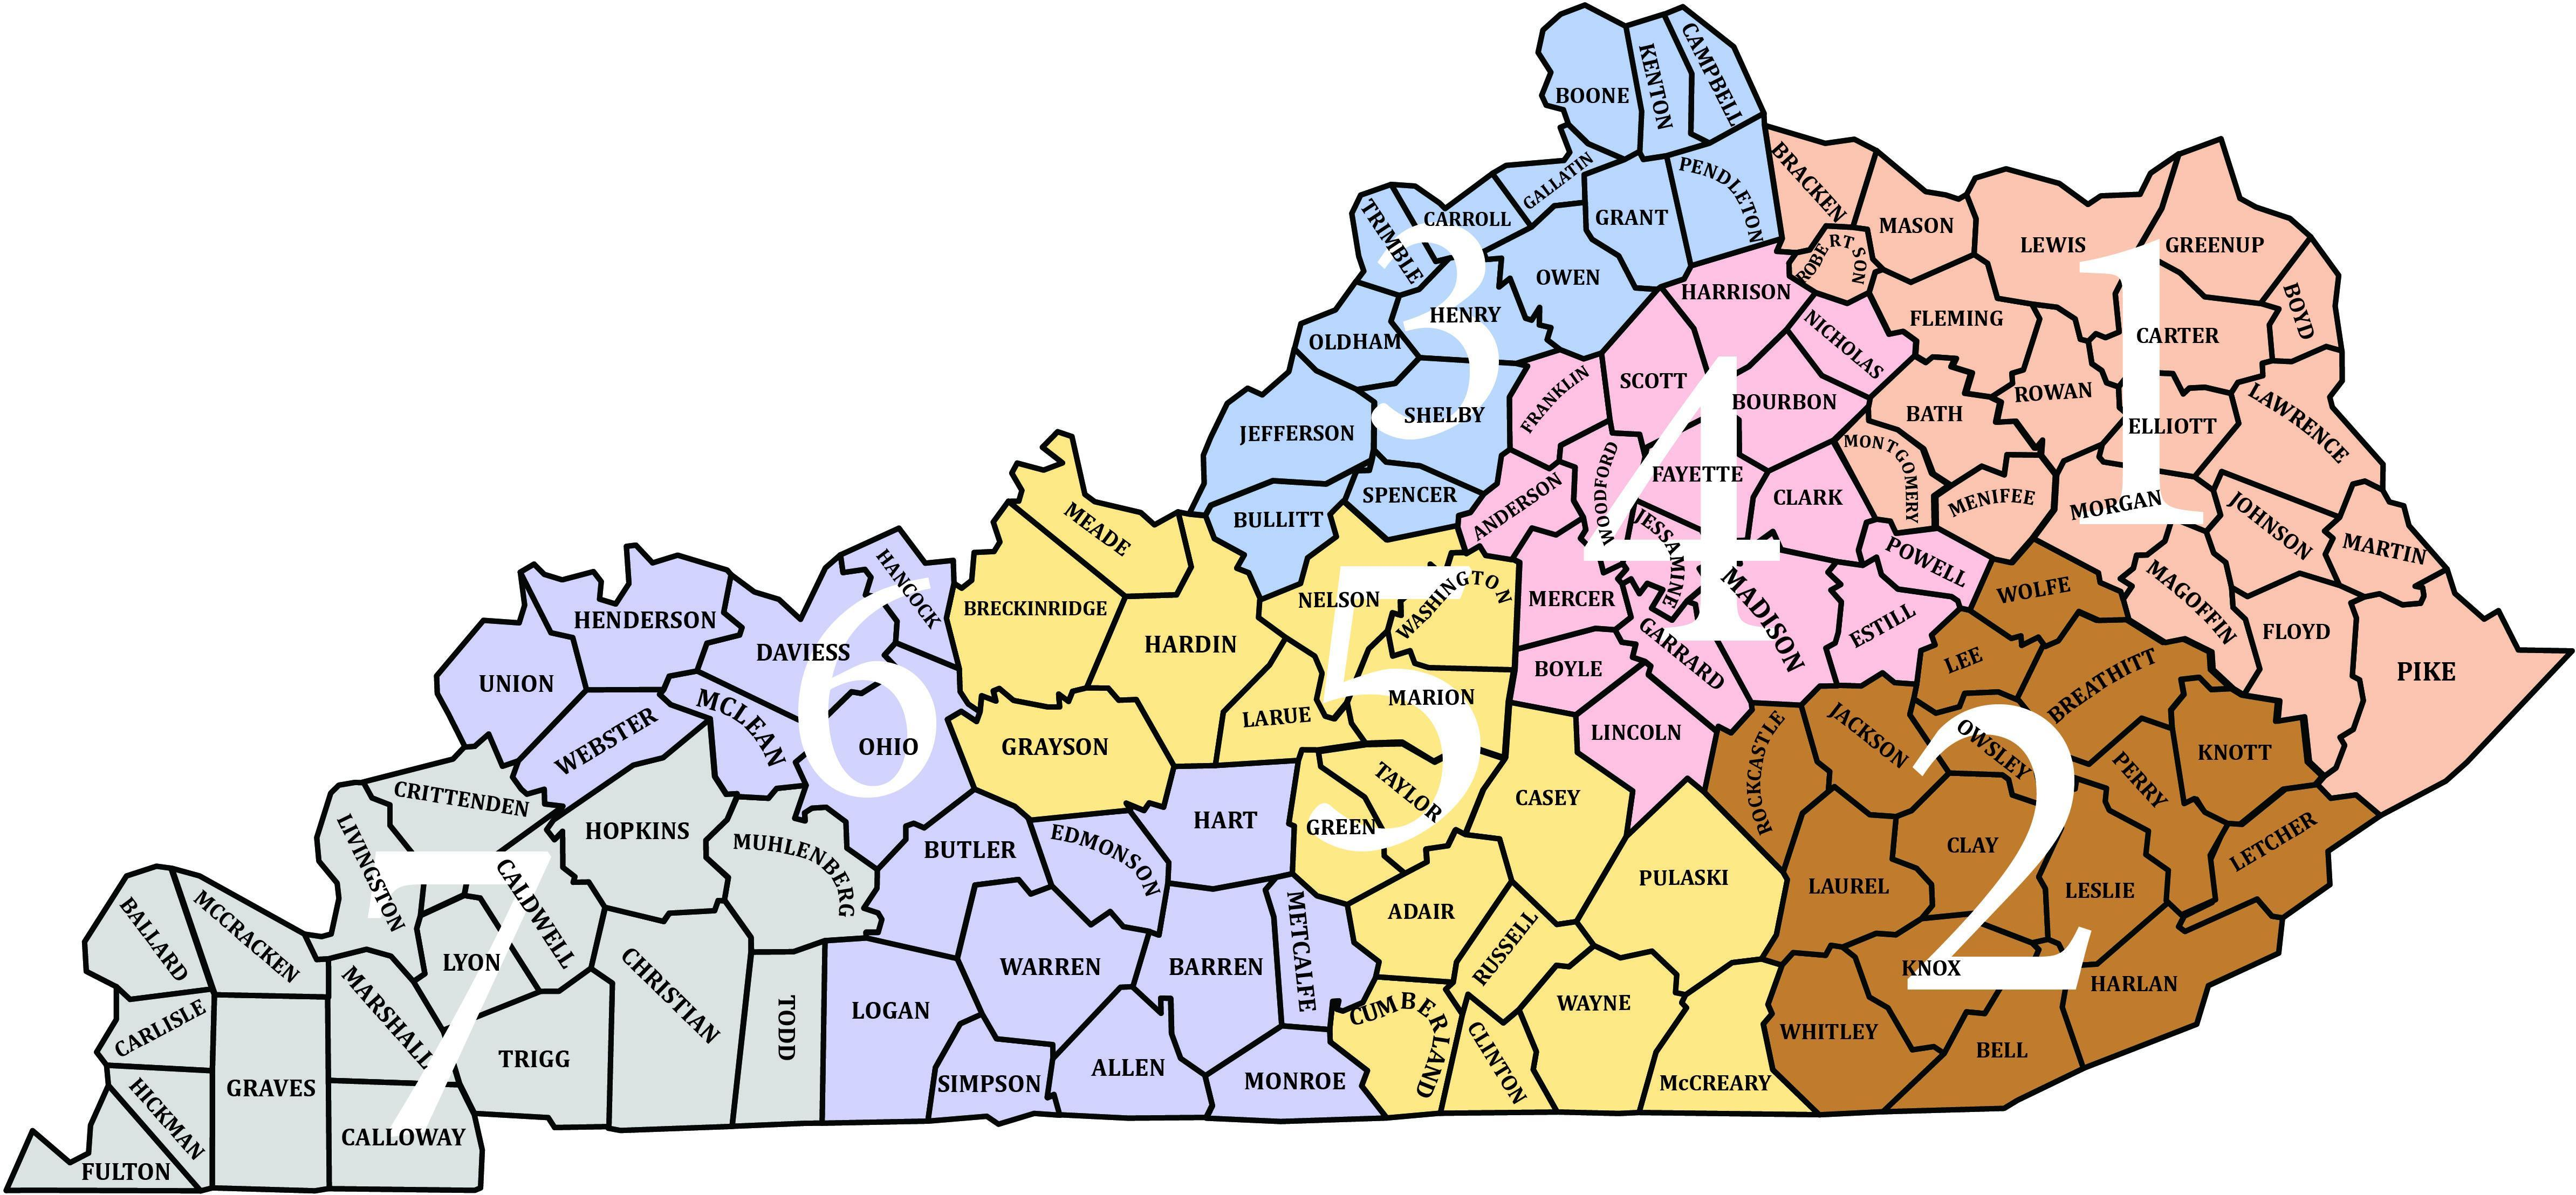 State Map of Counties and Districts